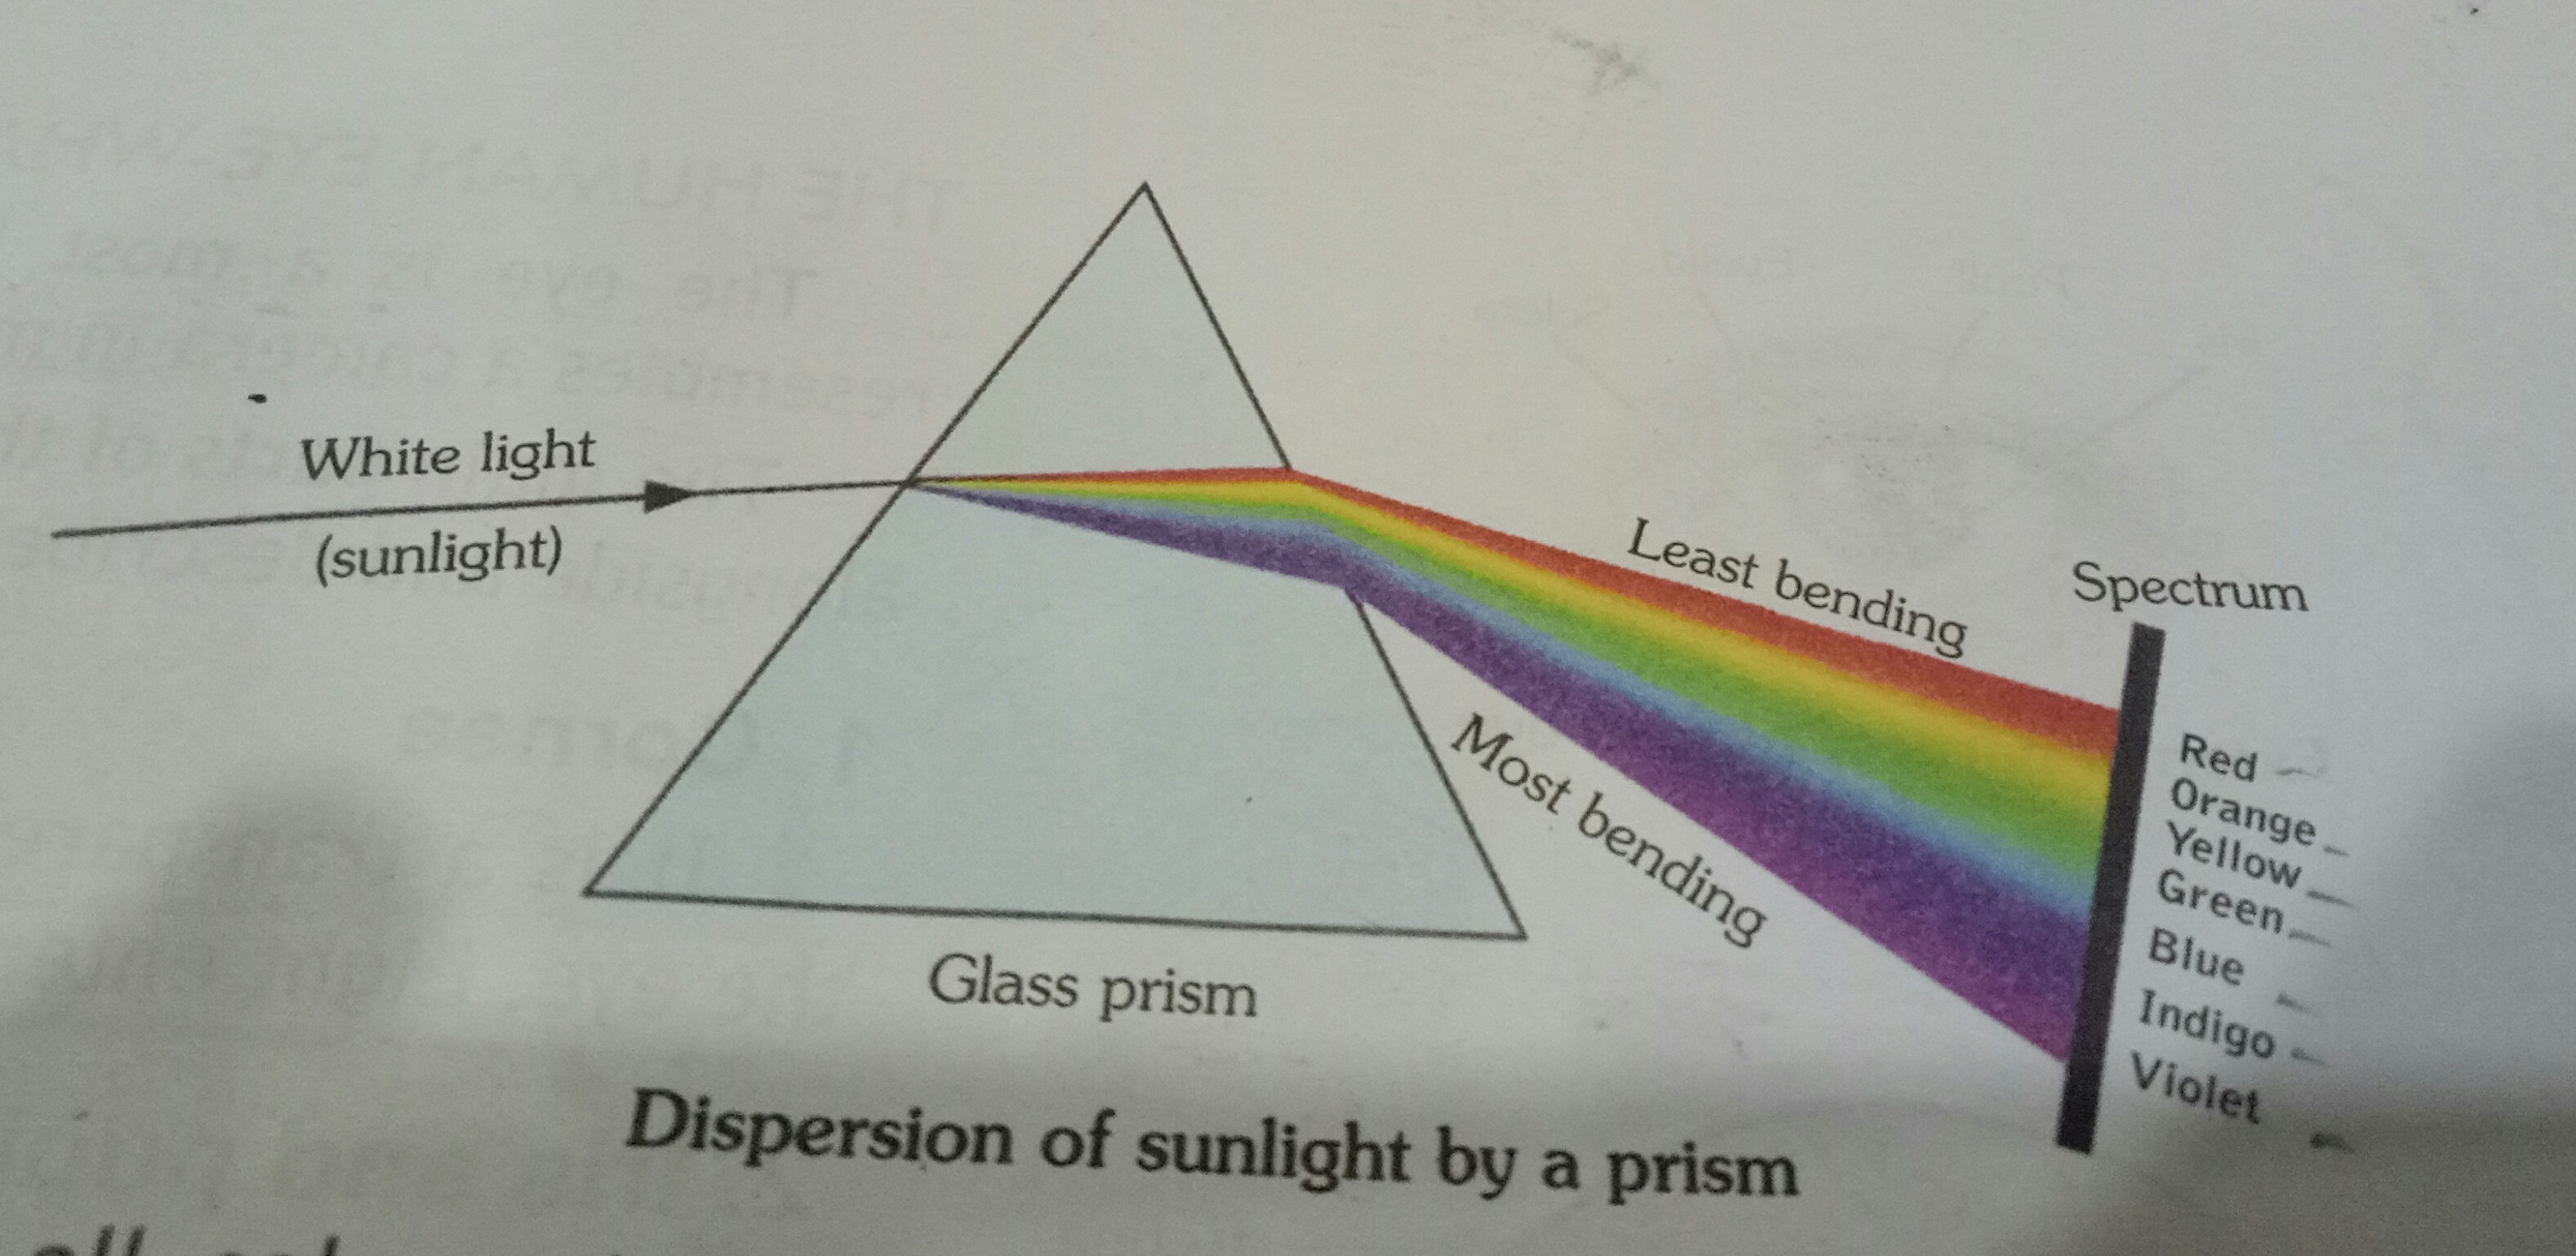 Draw A Labelled Ray Diagram To Illustrate The Dispersion